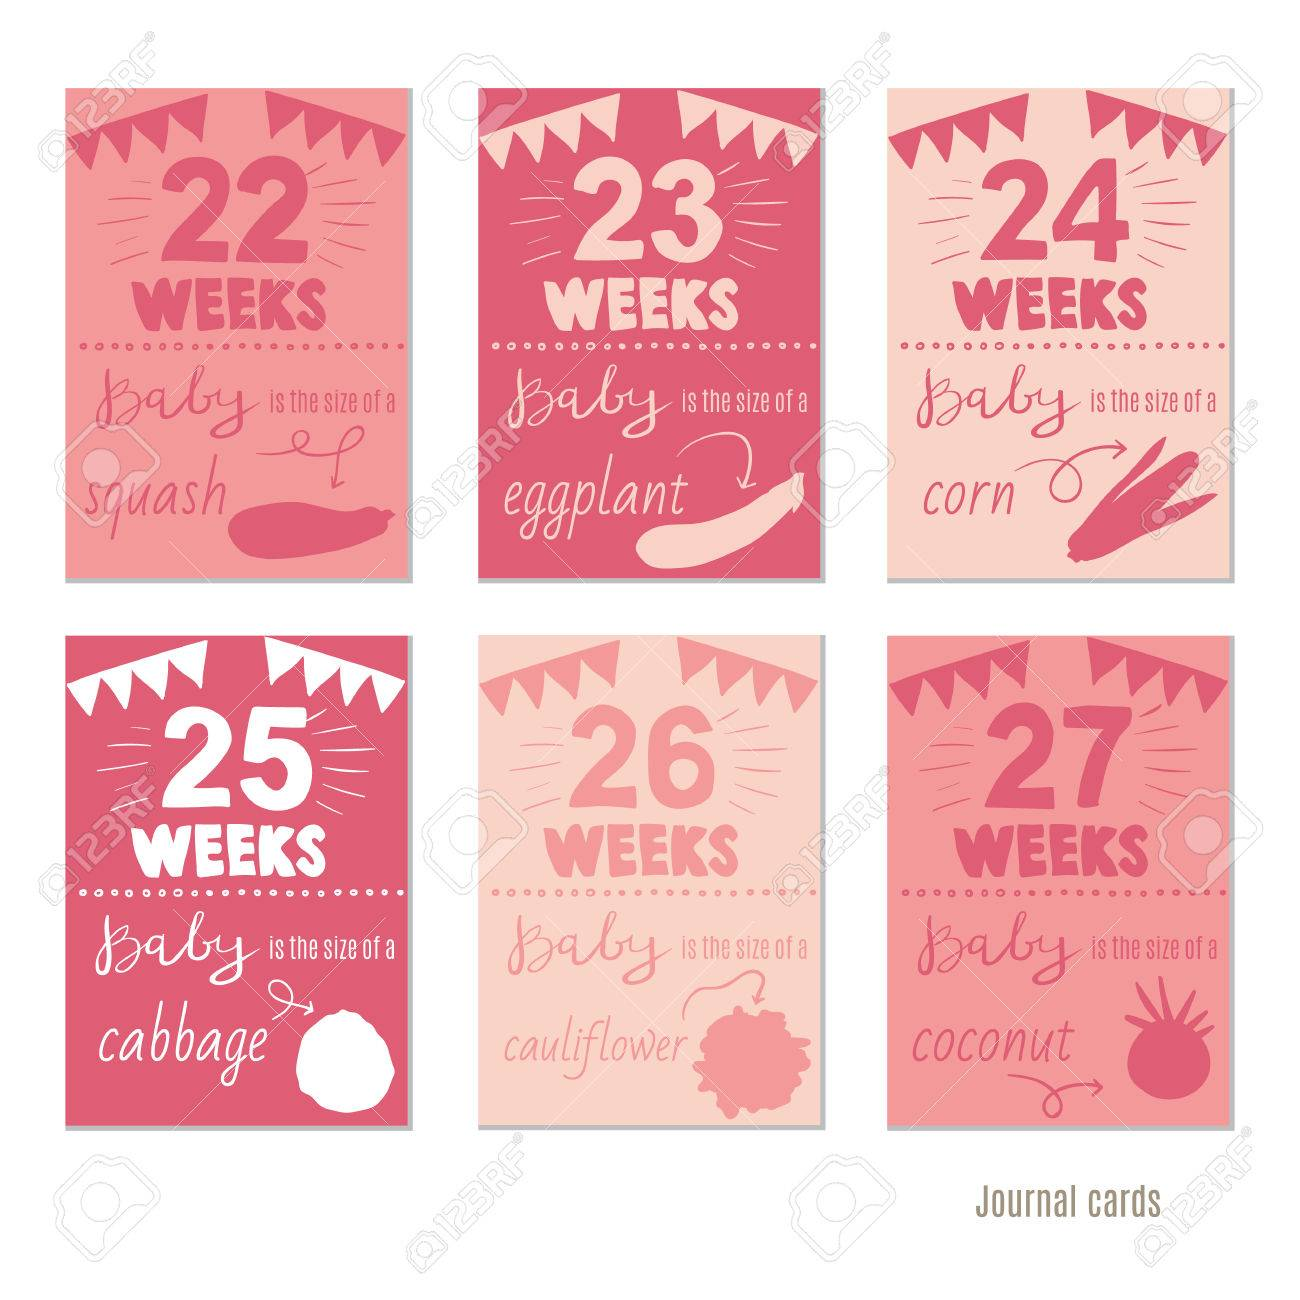 Pregnancy 12 weeks vector design templates for journal cards pregnancy 12 weeks vector design templates for journal cards scrapbooking cards greeting cards pronofoot35fo Images